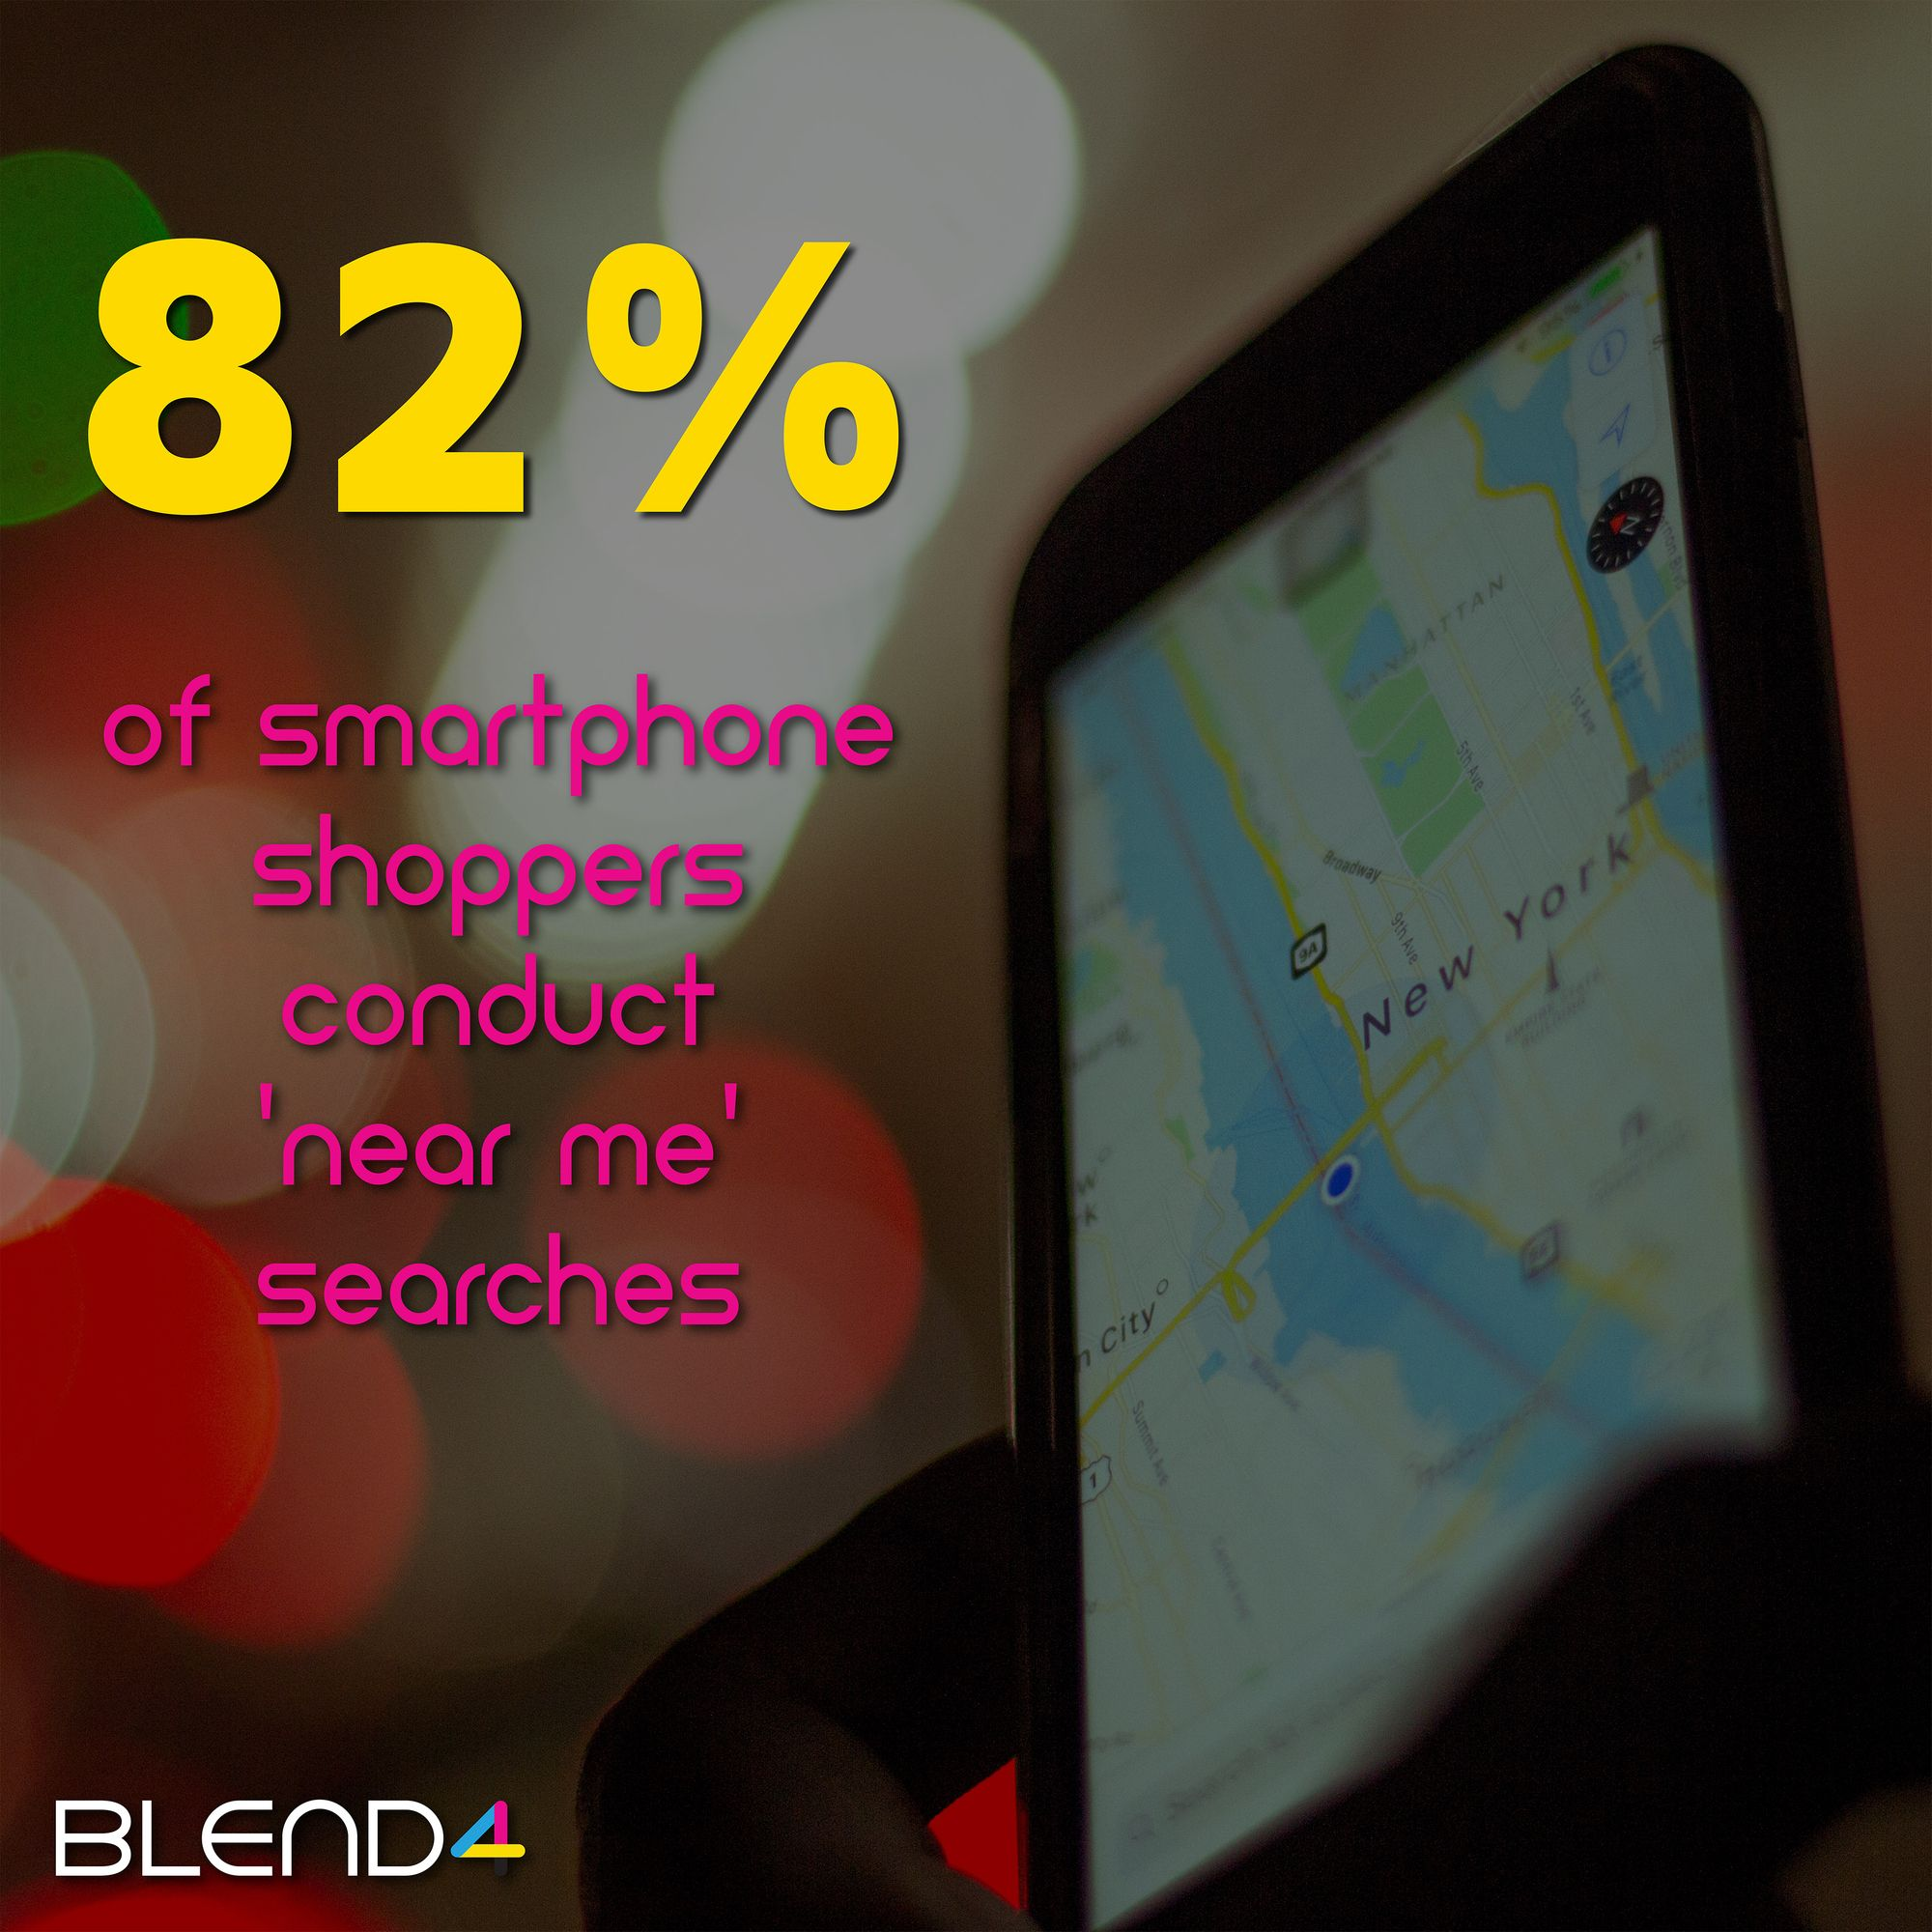 82 Of Smartphone Shoppers Conduct Near Me Searches Is Your Business Listed Let Us Help With A Printing Software Graphic Design Services Service Design